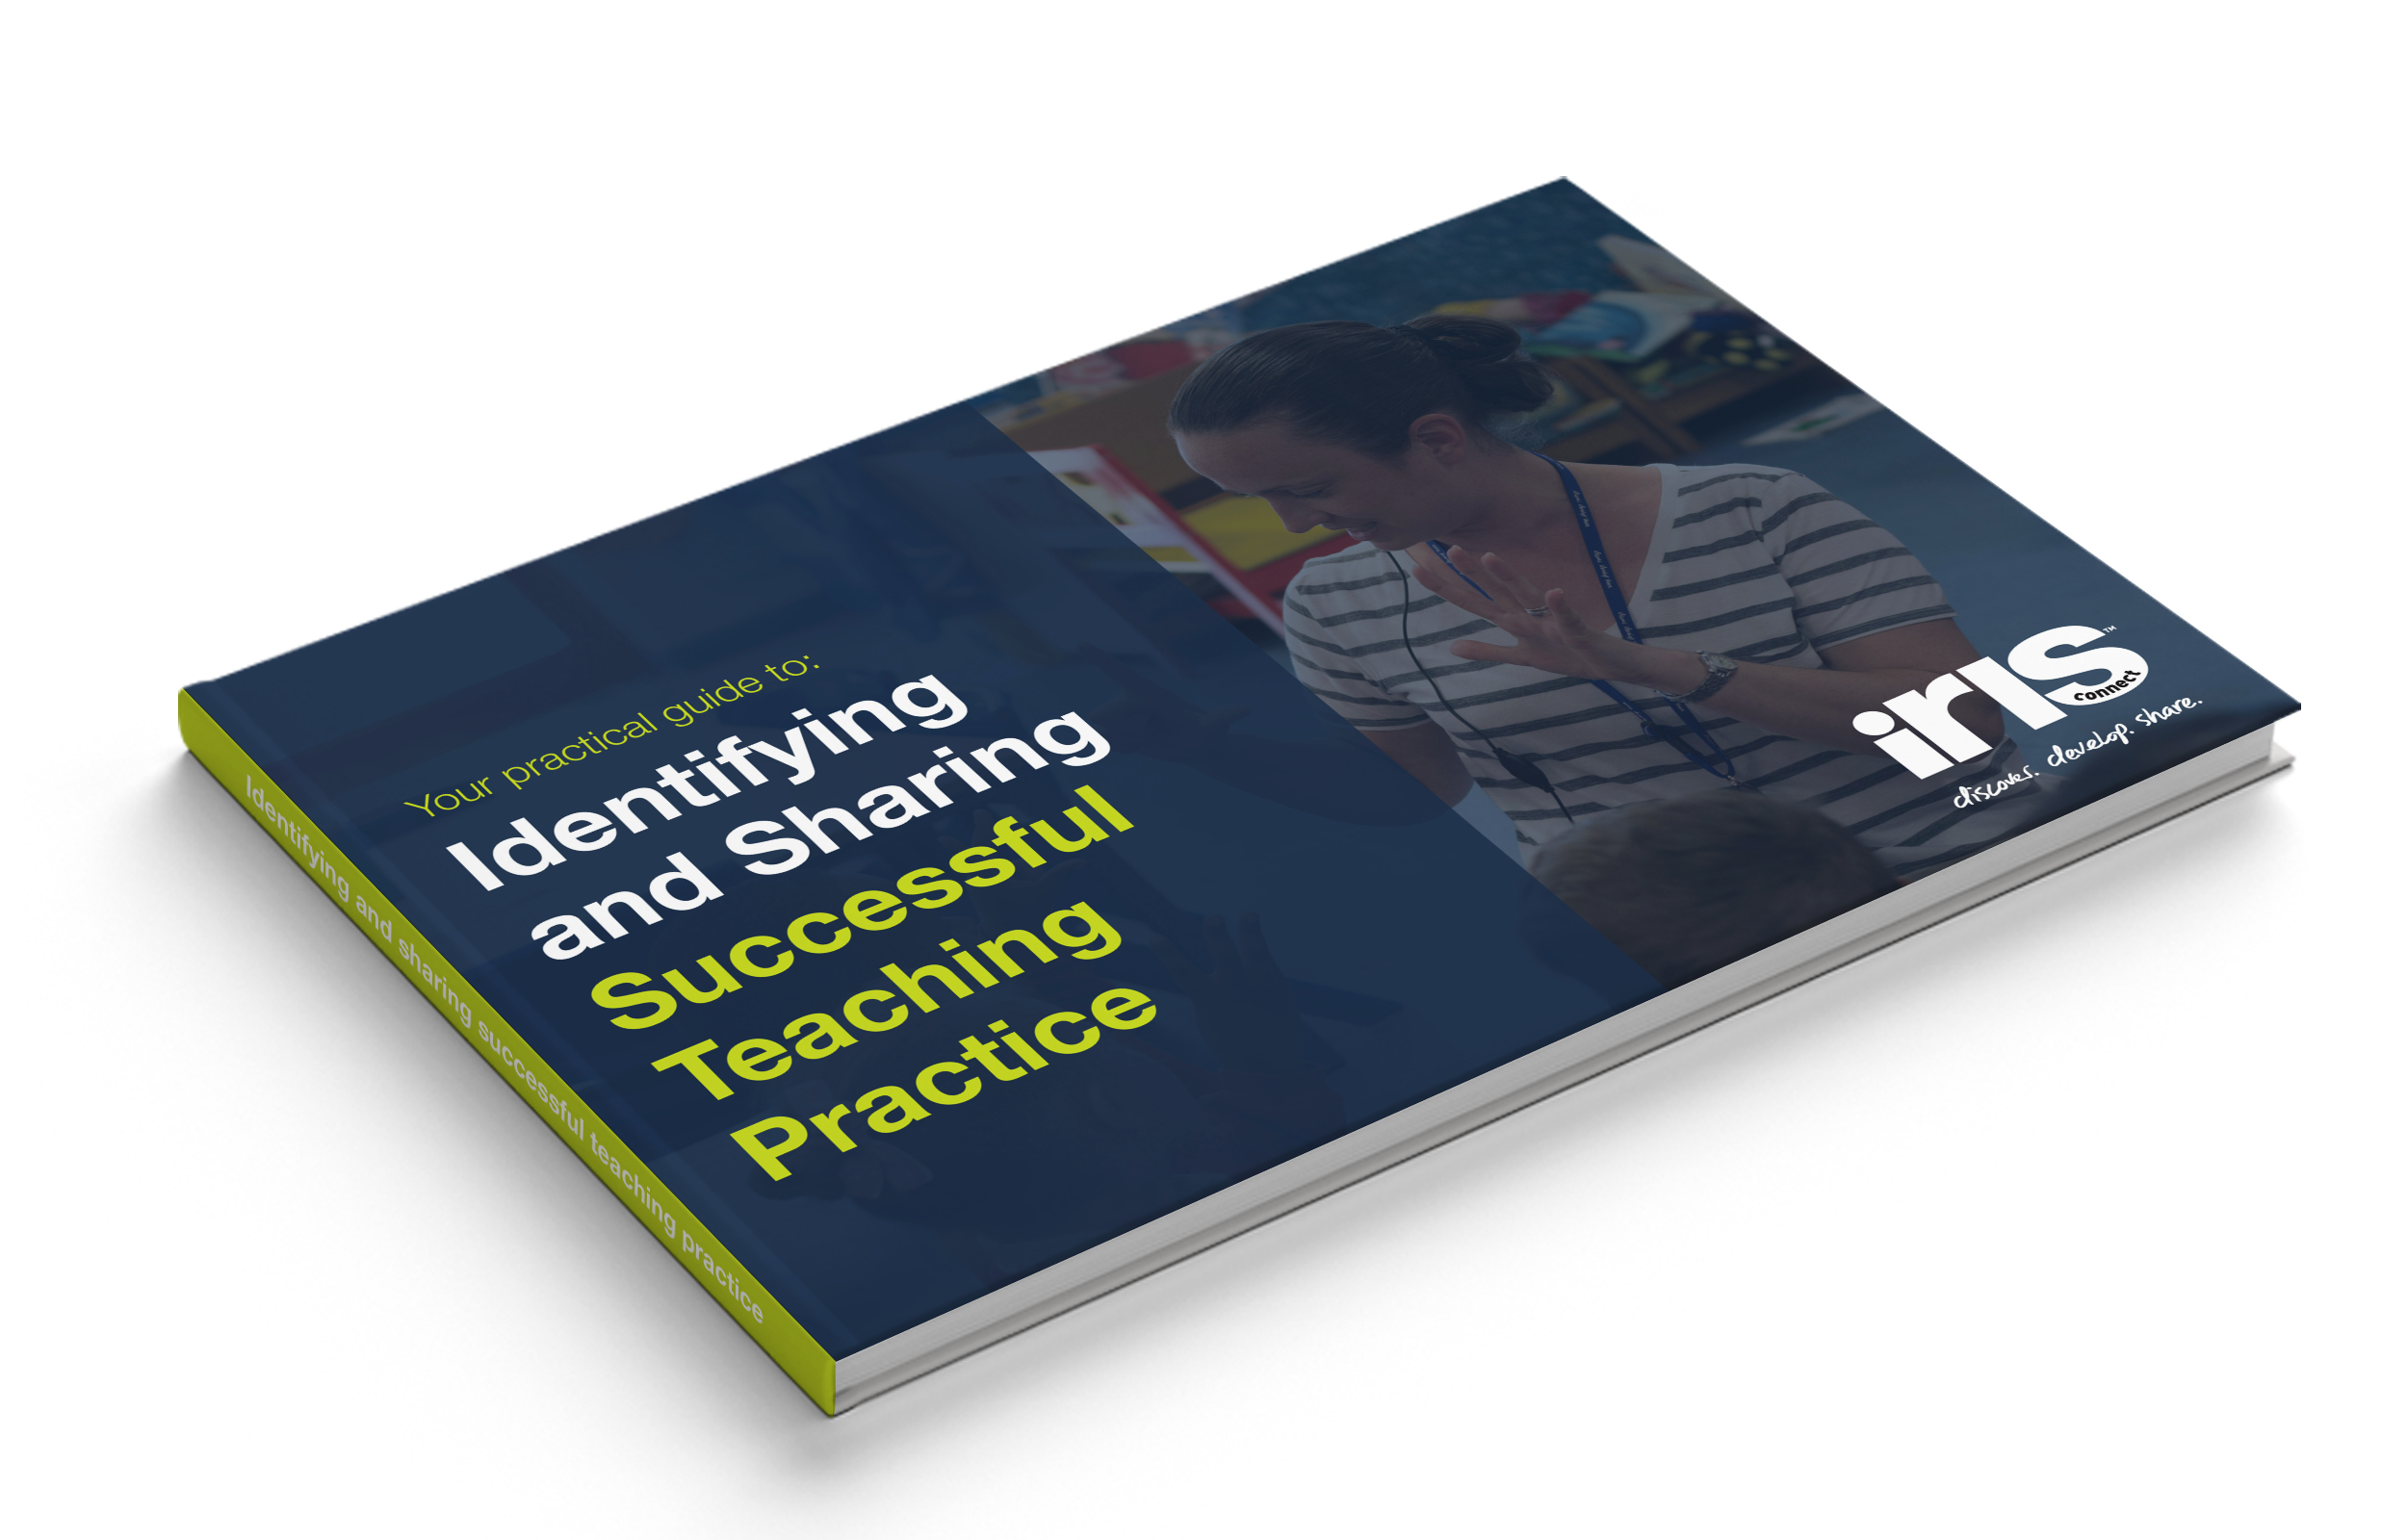 Identifying-and-Sharing-Successful-Teaching-Practice-BOOK